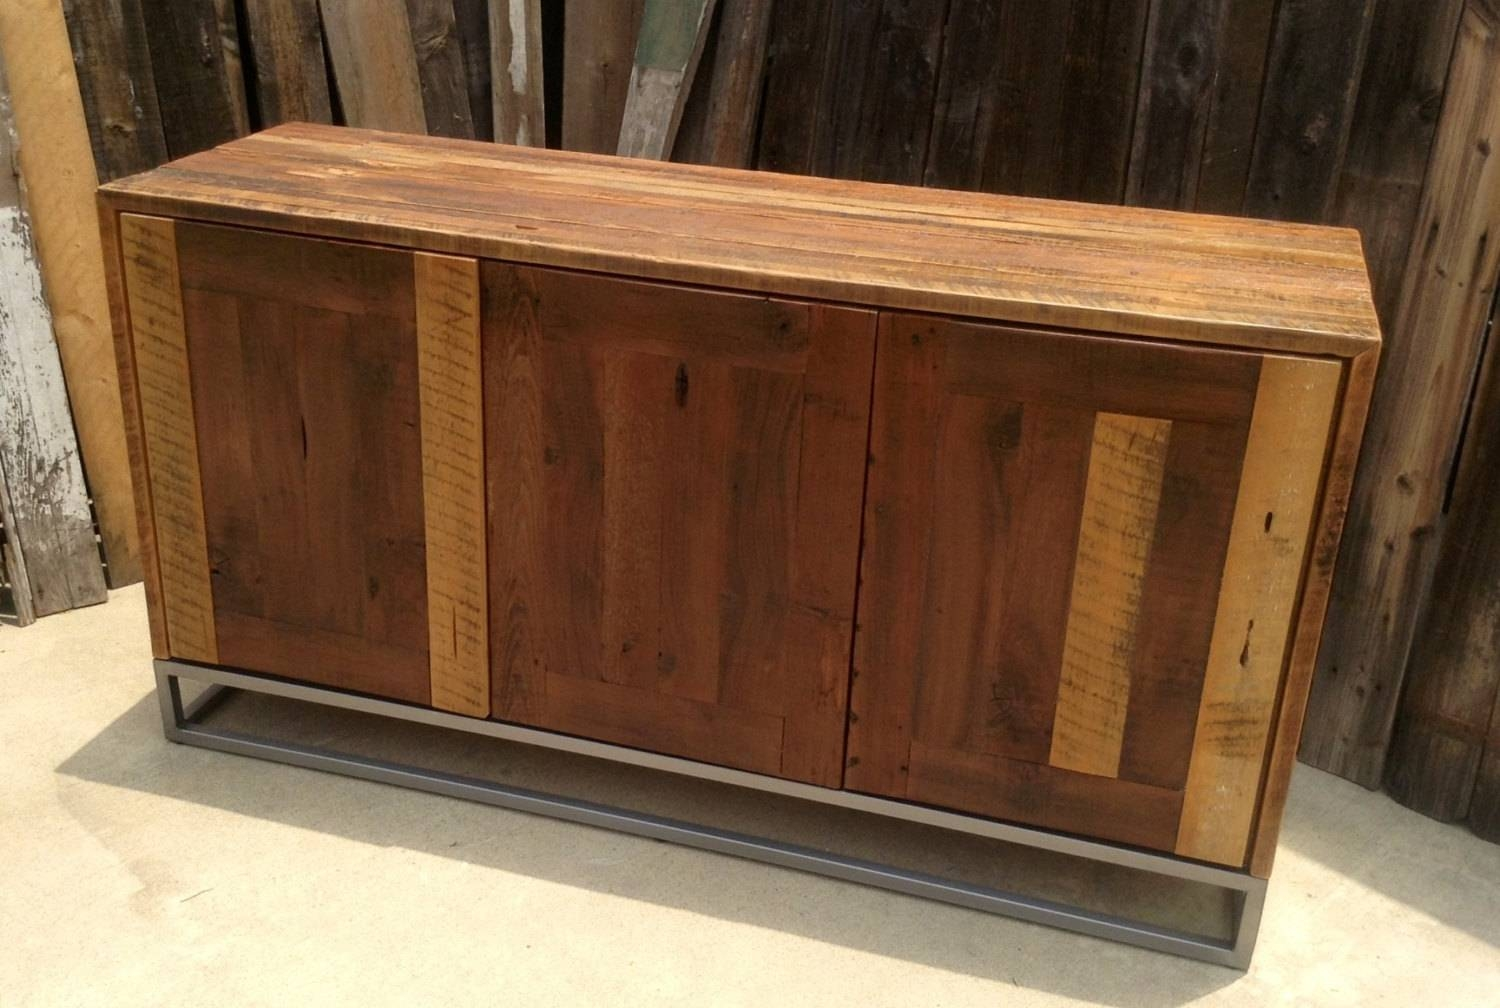 Custom Rustic Modern/ Industrial Reclaimed Wood Buffet Cabinet Inside Most Up To Date Reclaimed Wood Sideboards (#2 of 15)